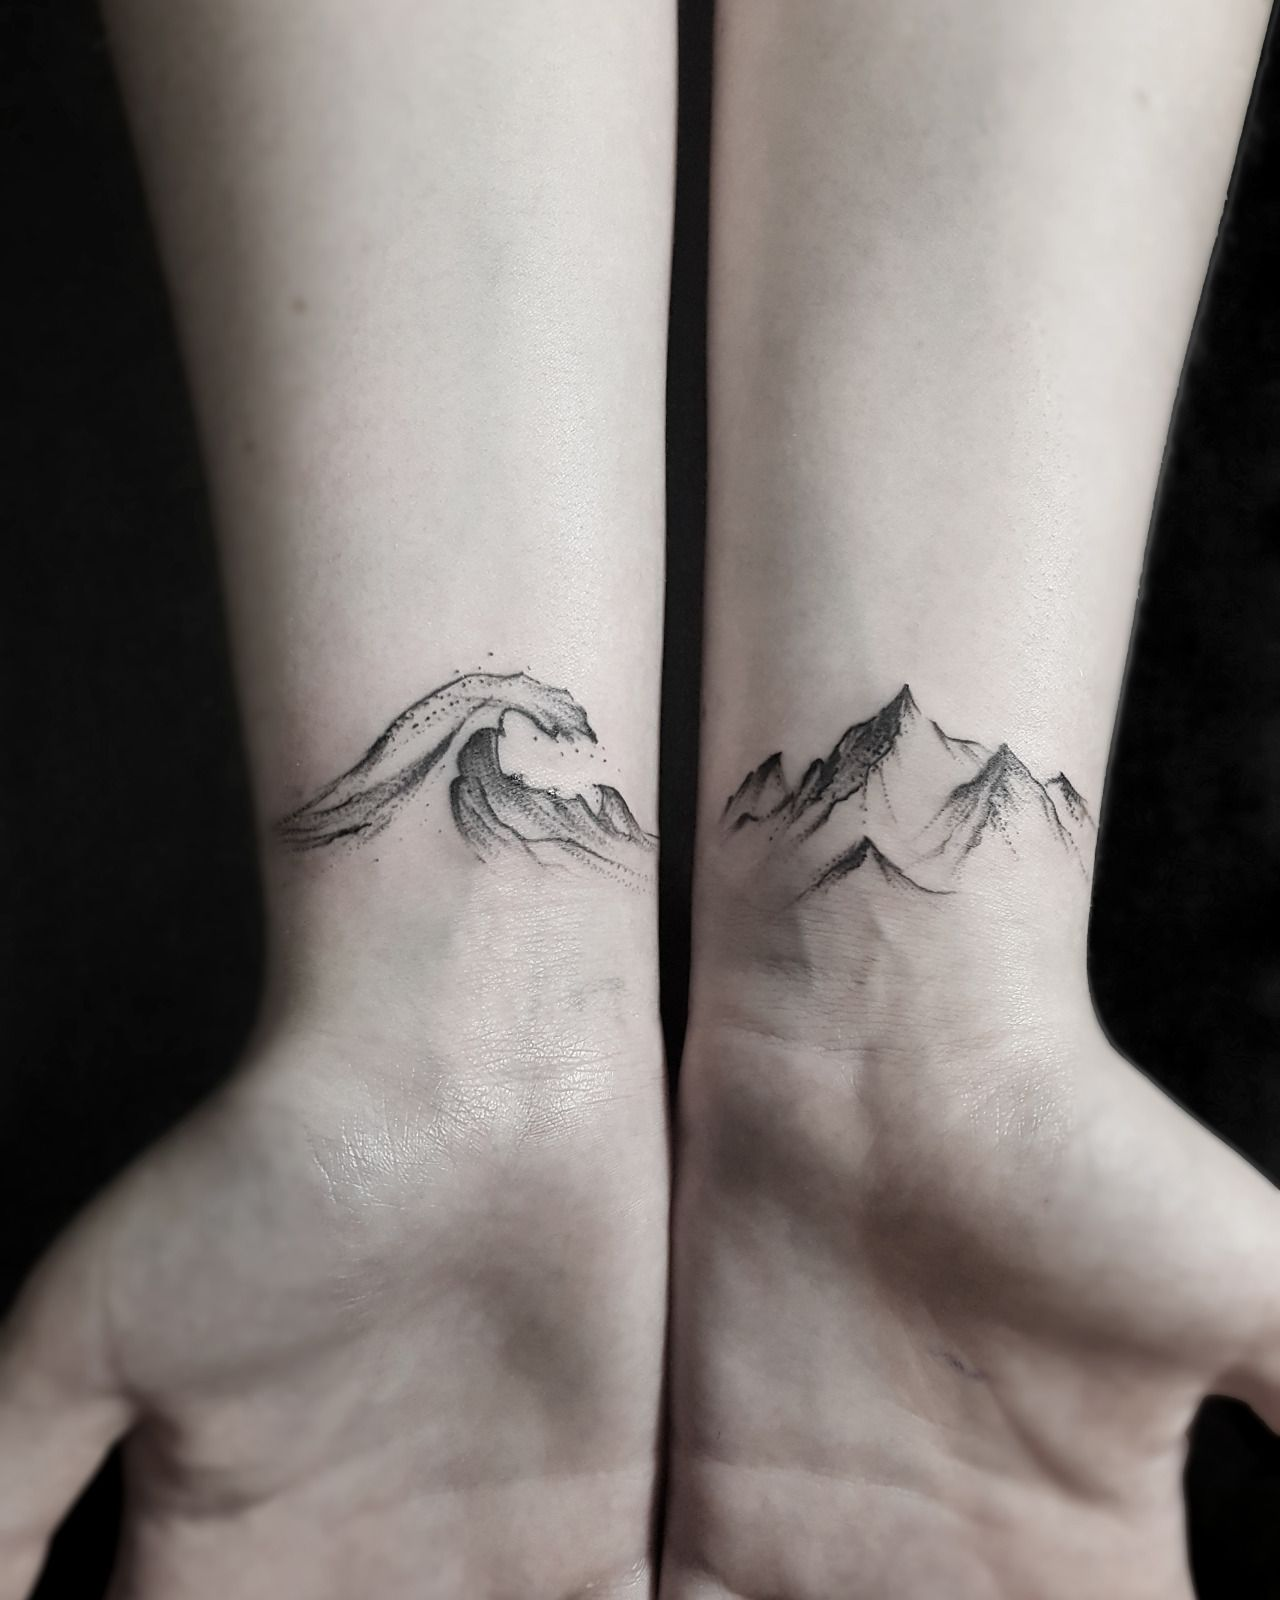 7138f661c1619 30 Epic Mountain Tattoo Ideas | Tattoo | Ocean tattoos, Mountain ...